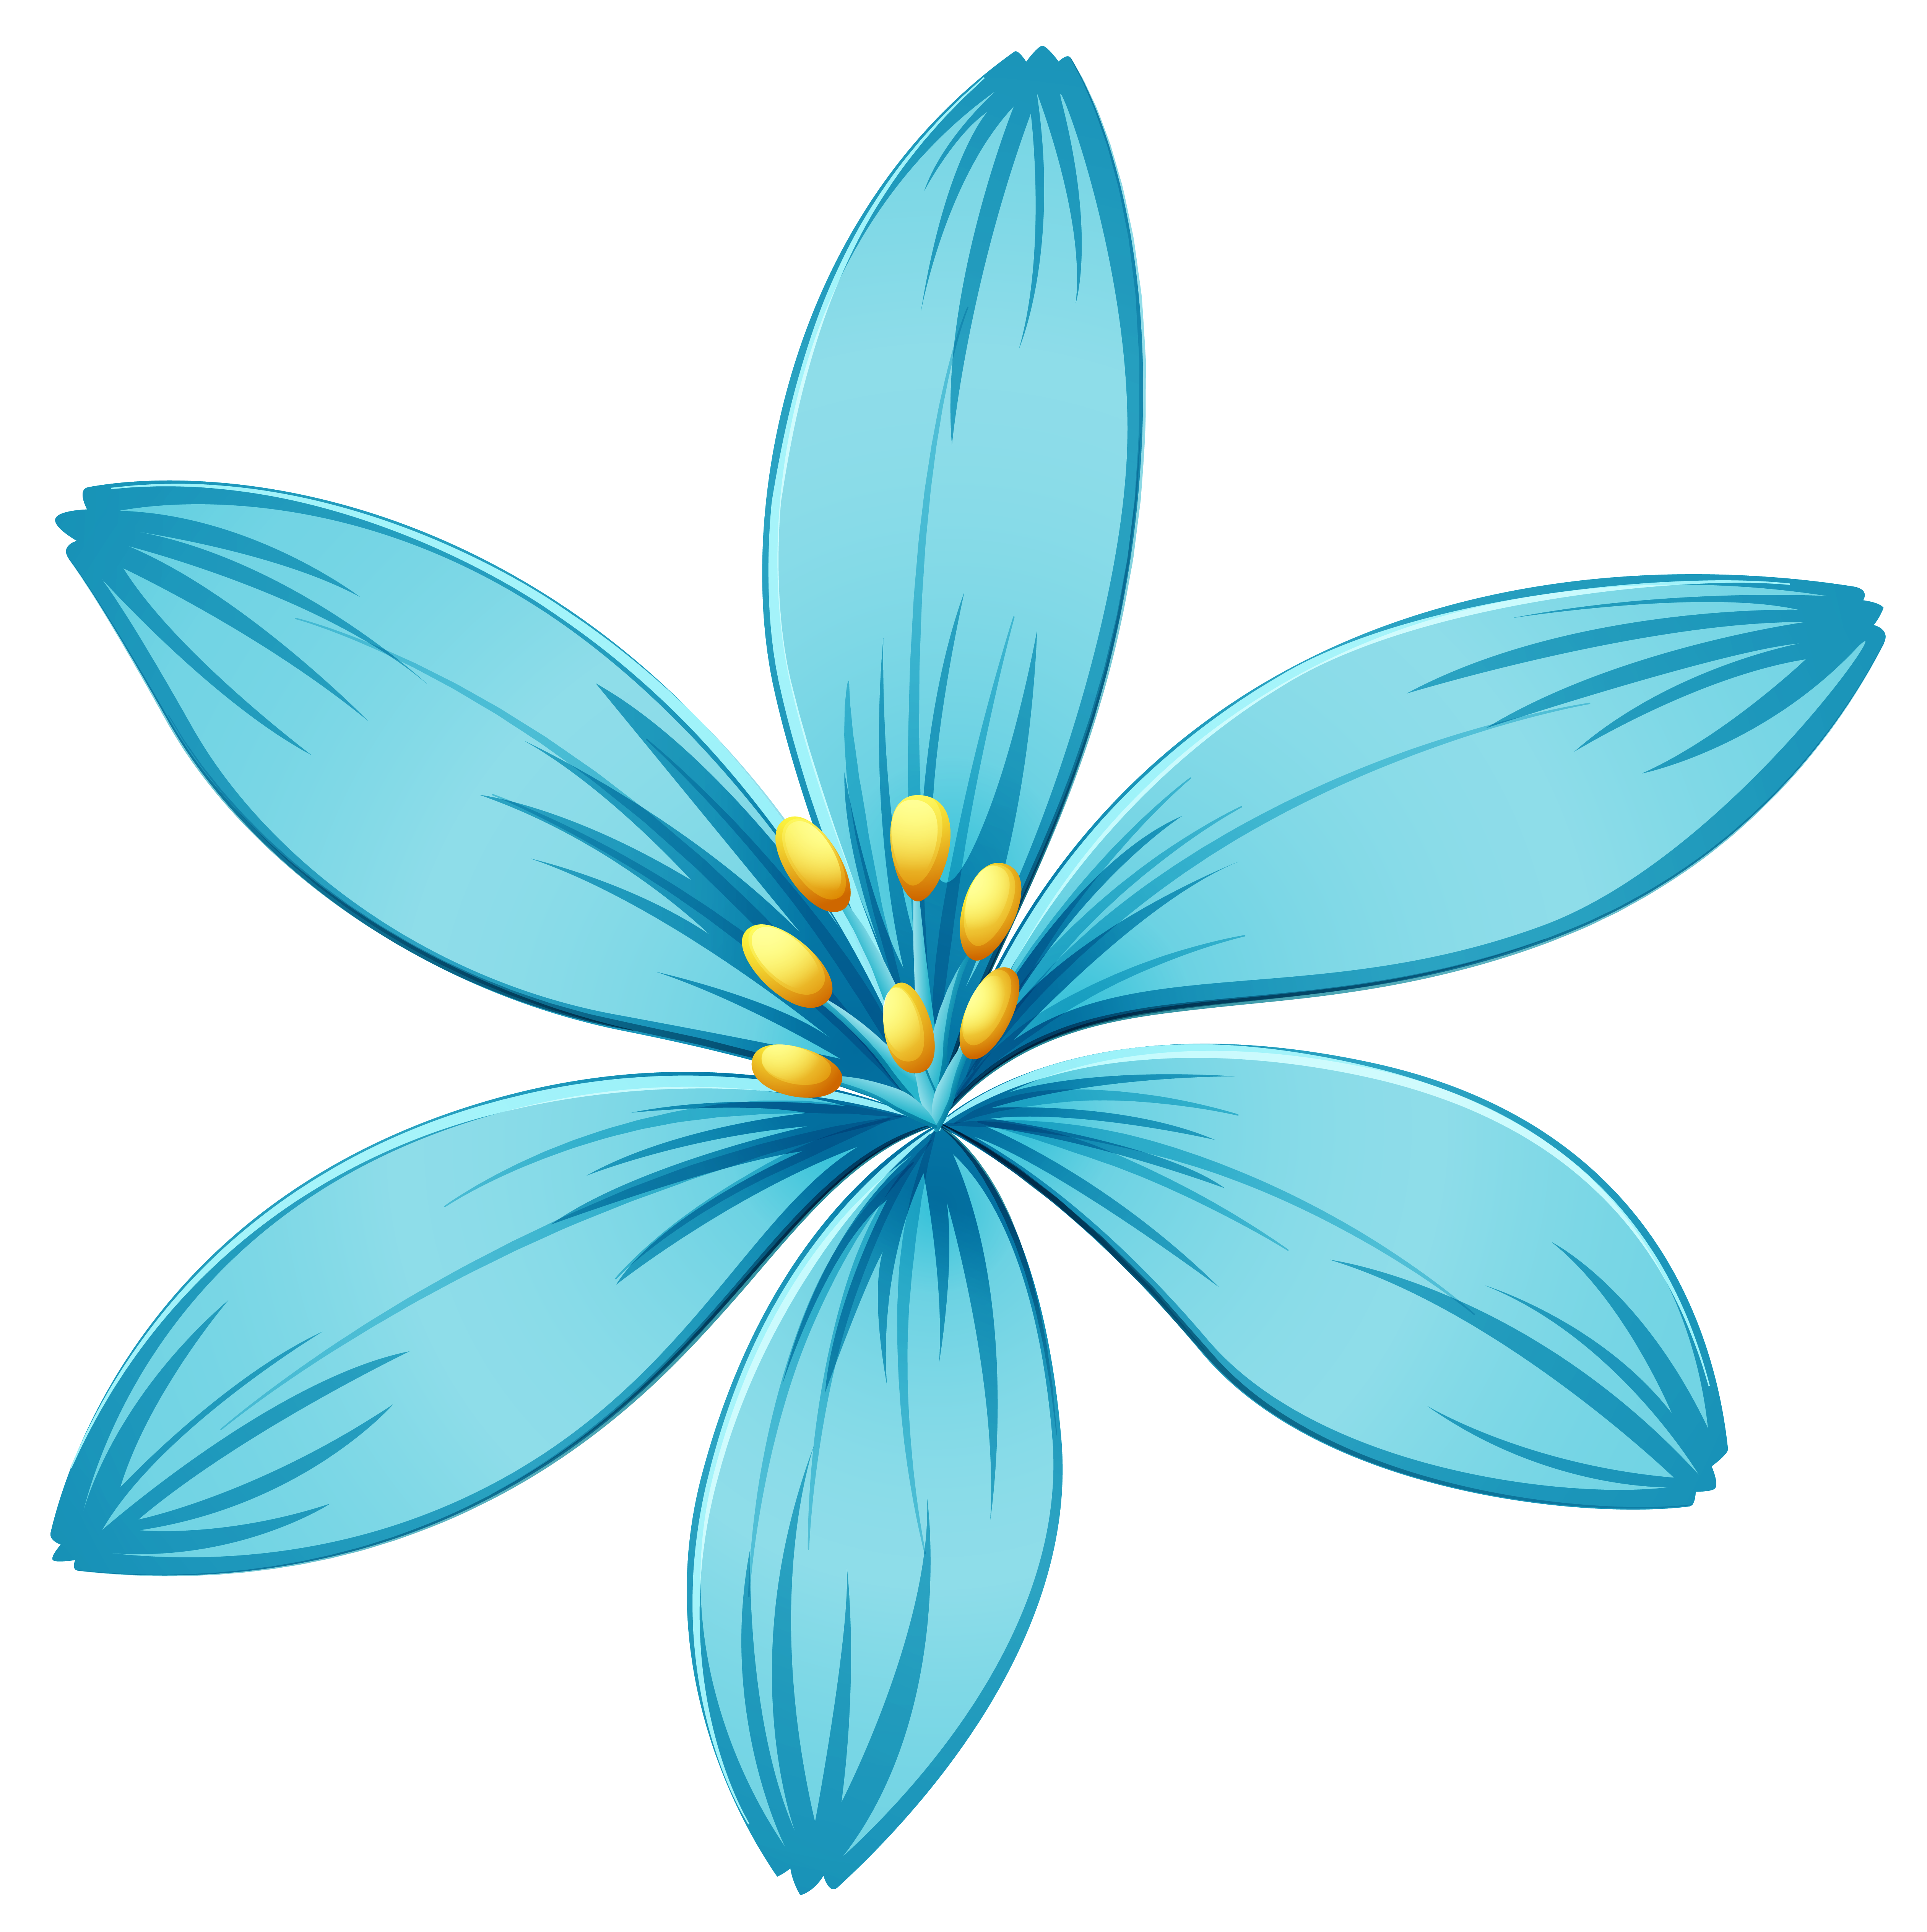 Blue flower png. Image gallery yopriceville high